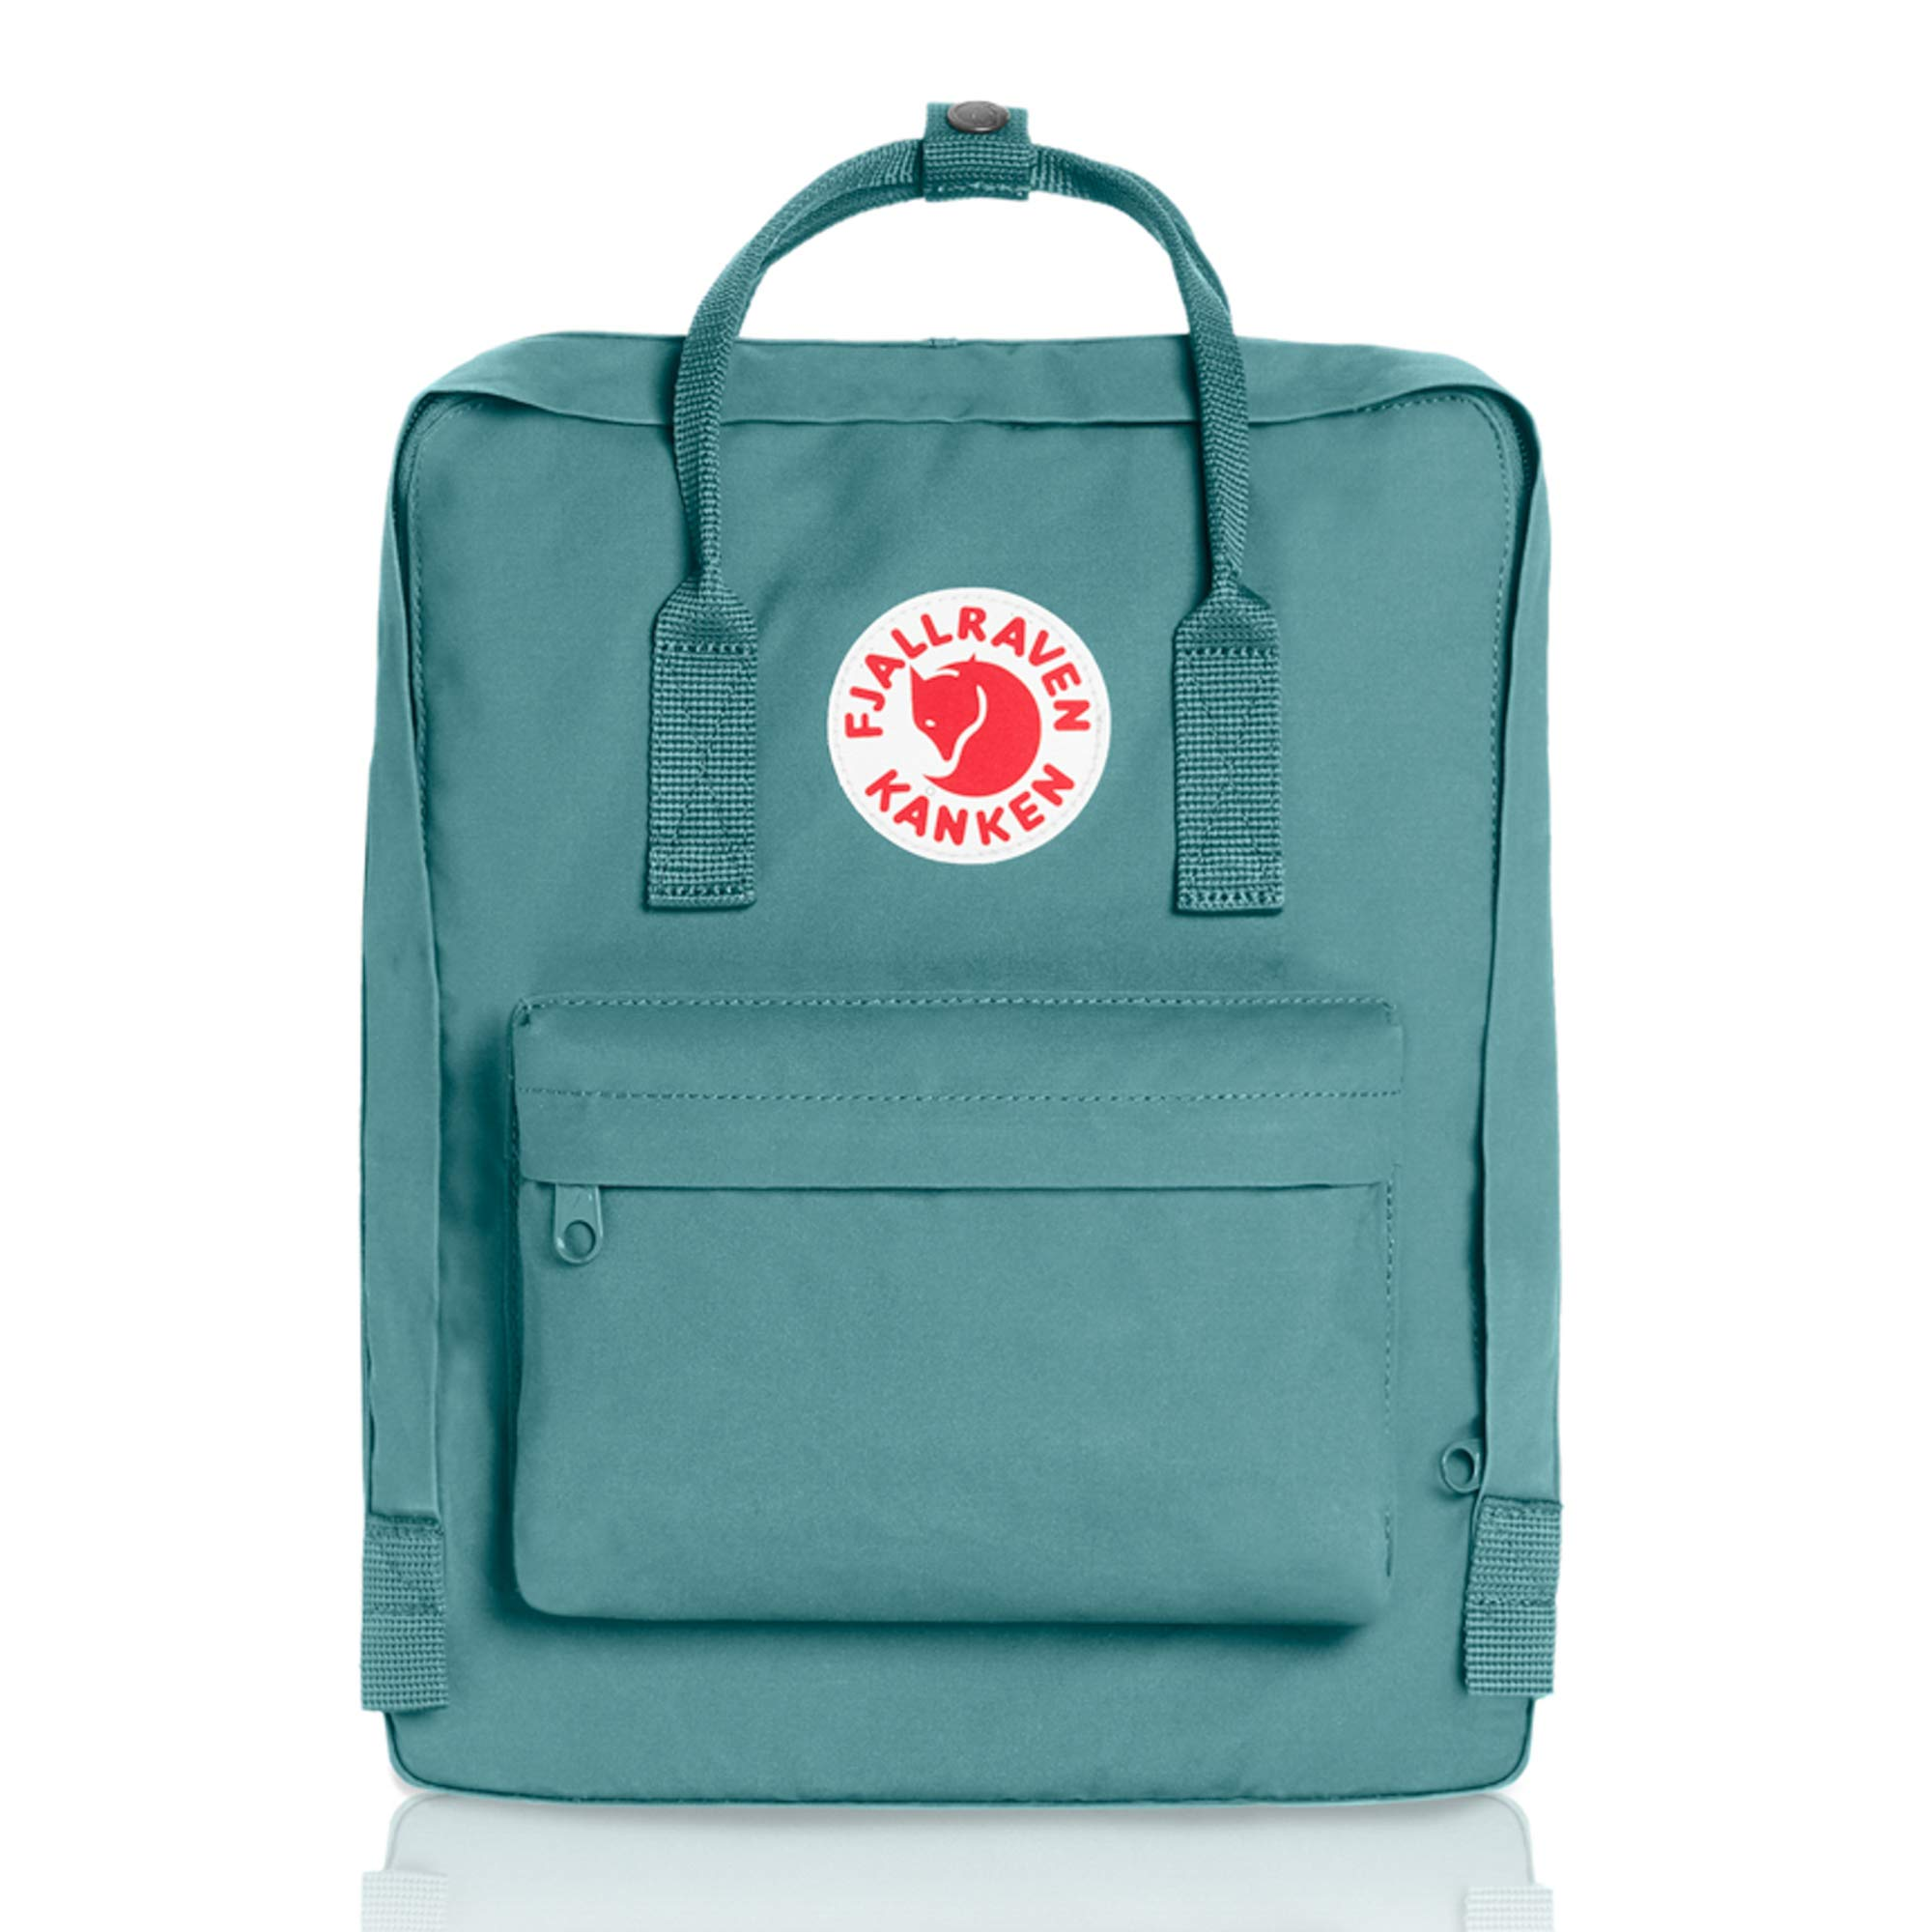 Fjallraven - Kanken Classic Pack, Heritage and Responsibility Since 1960, One Size,Frost Green